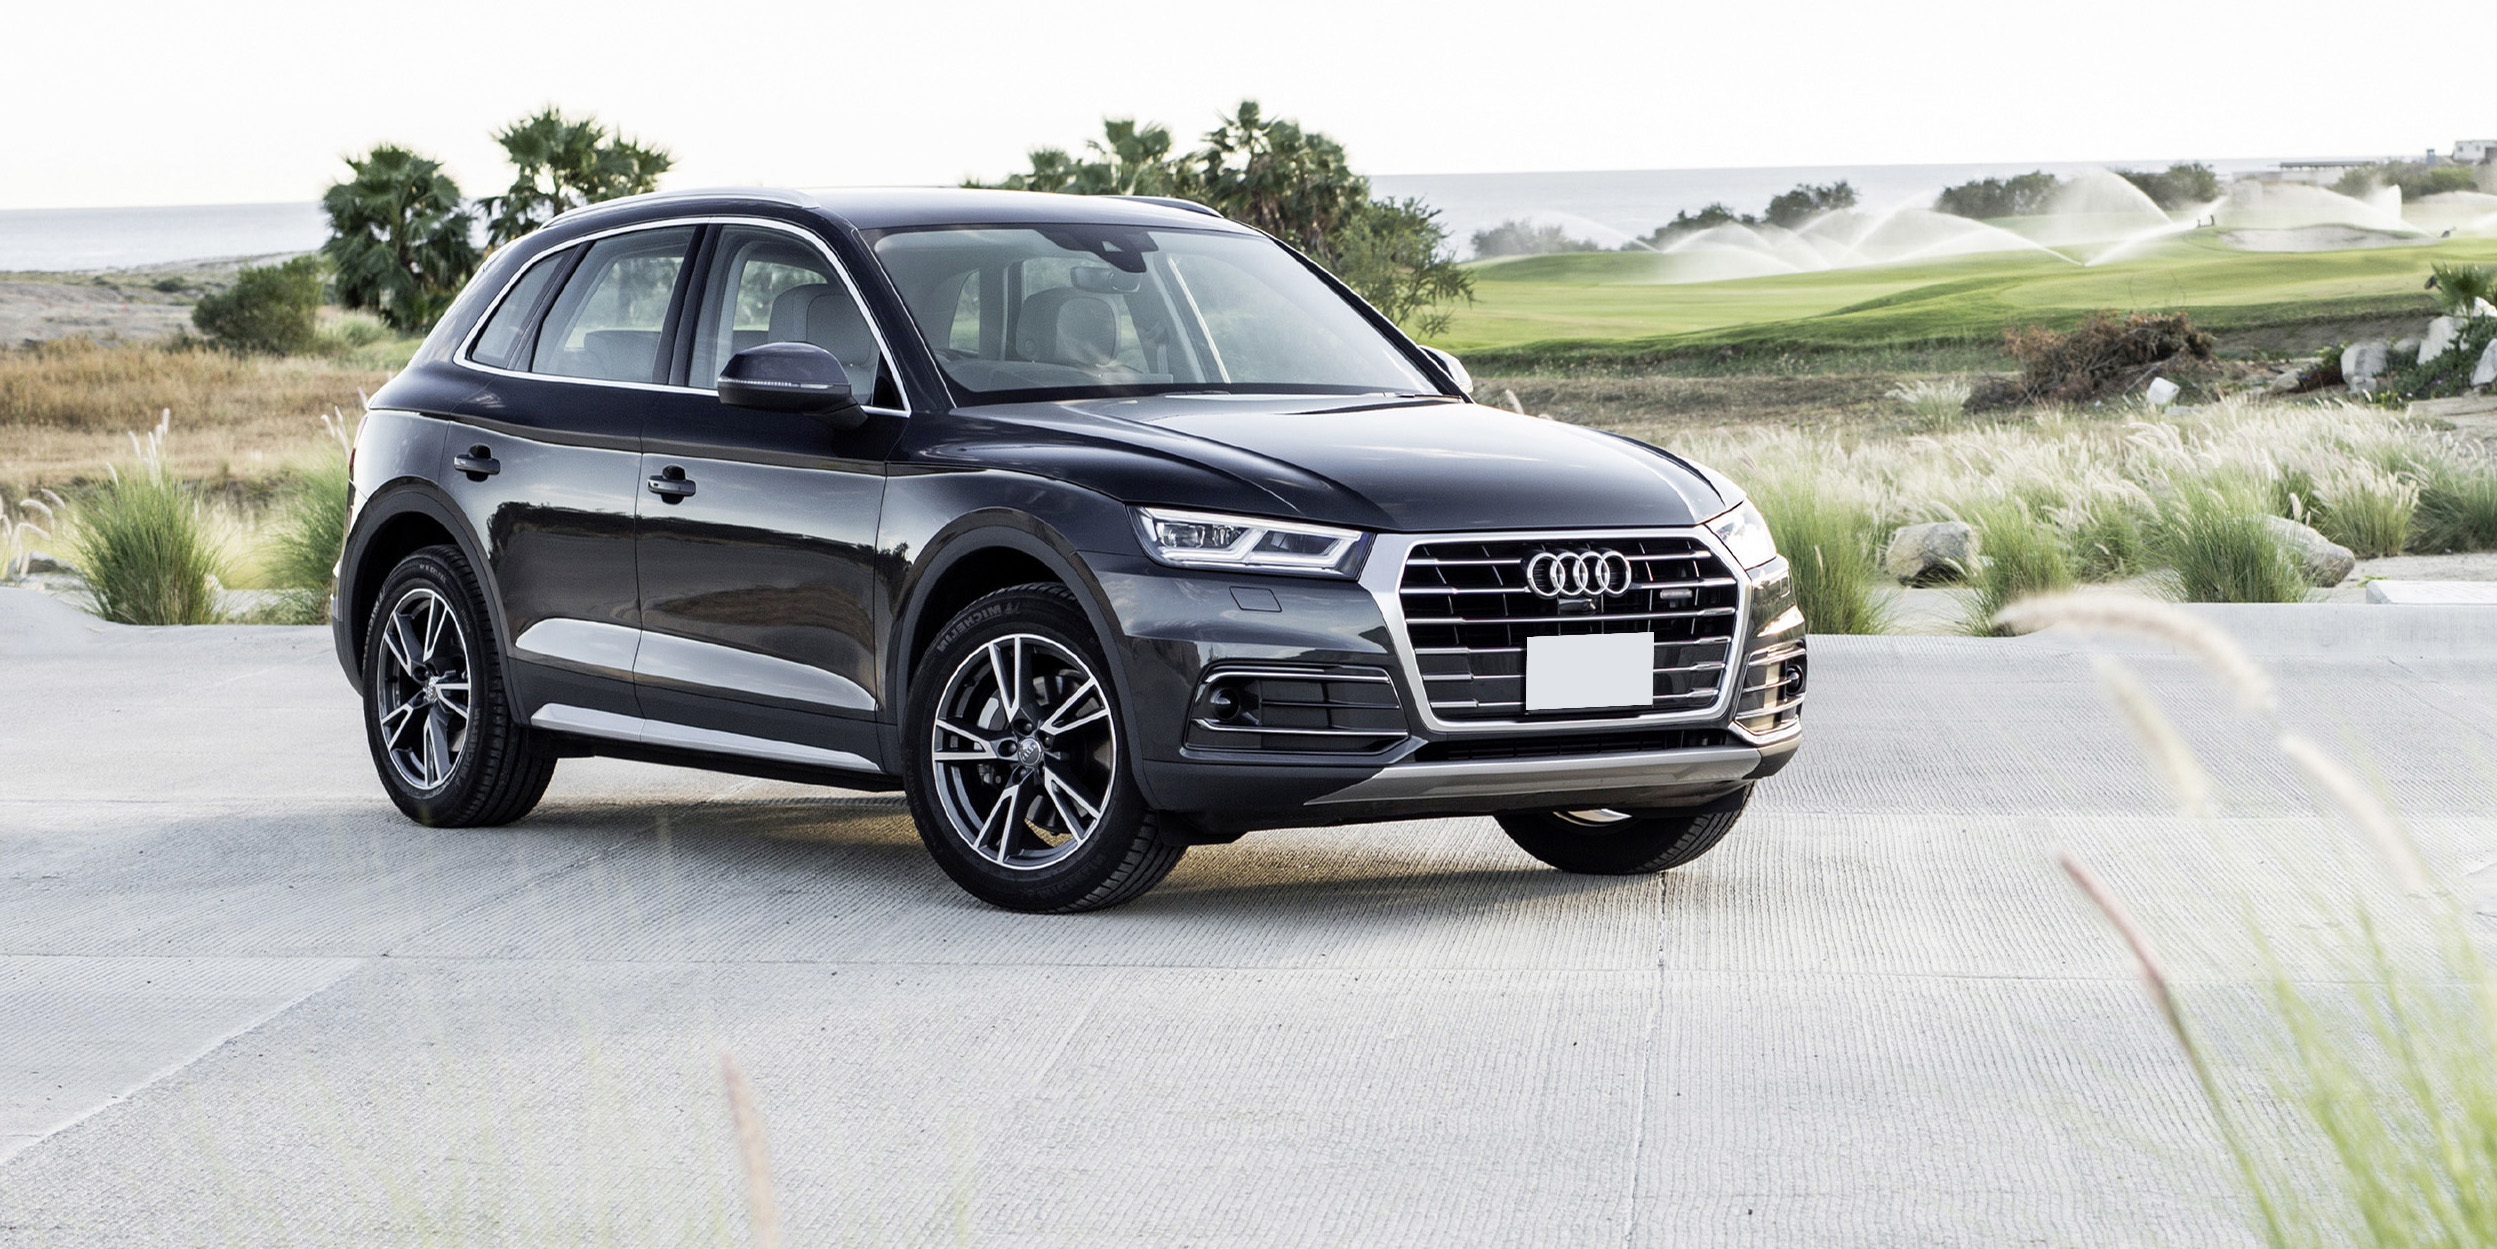 Audi Q5 Length >> Audi Q5 Dimensions Guide Uk Exterior And Interior Sizes Carwow